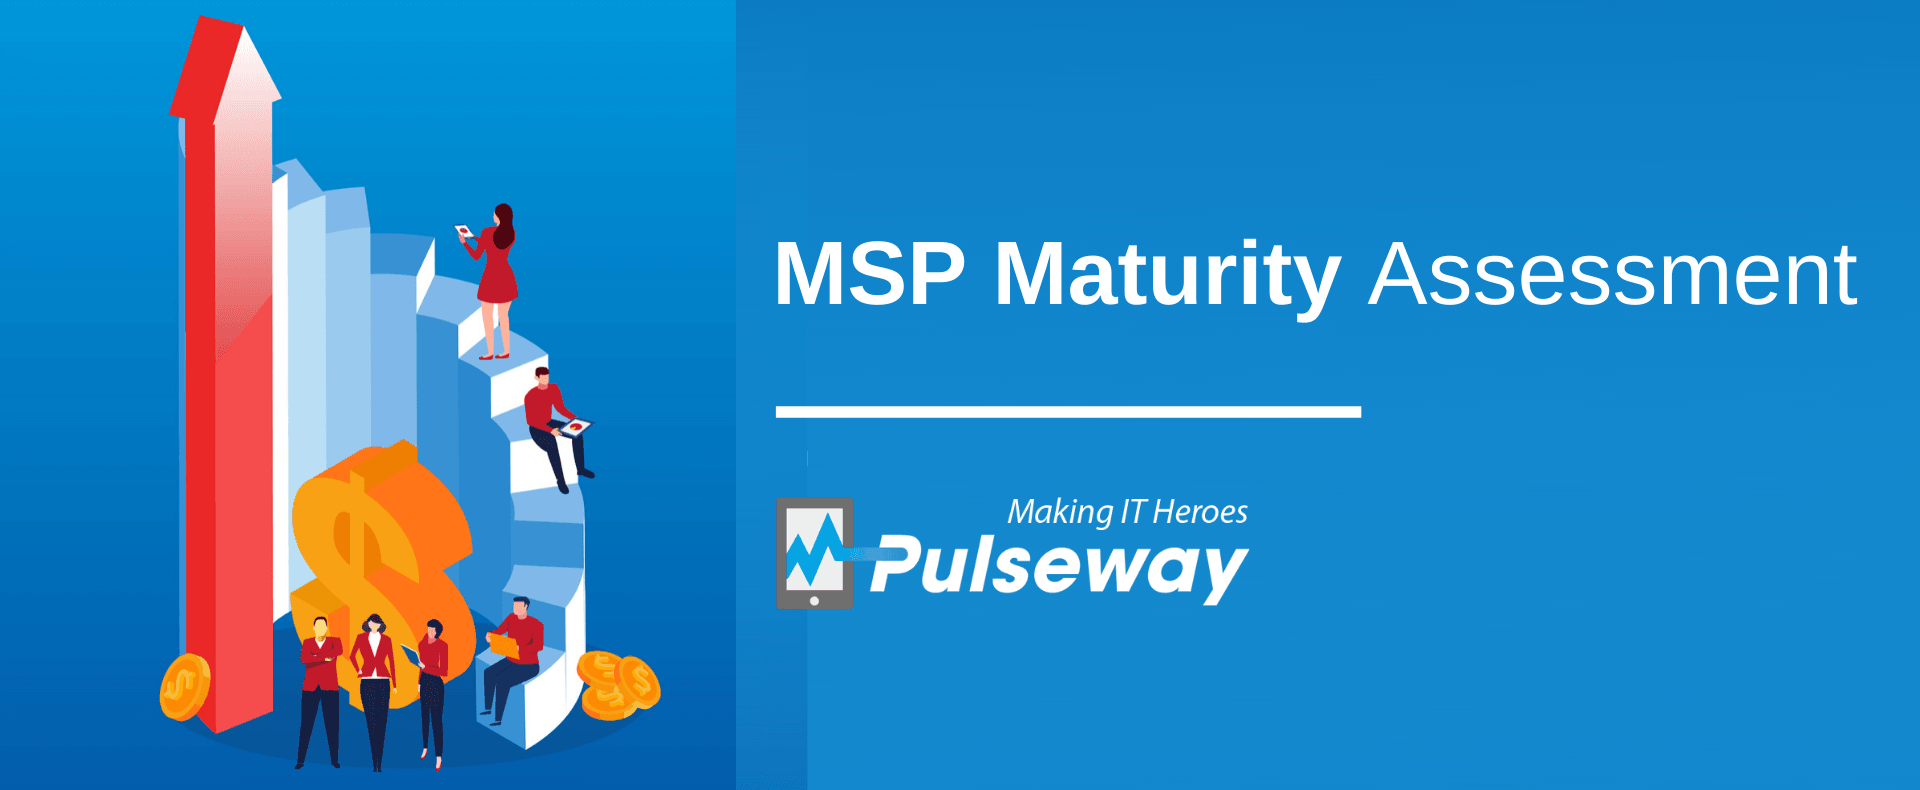 Free Real-Time MSP Maturity Assessment